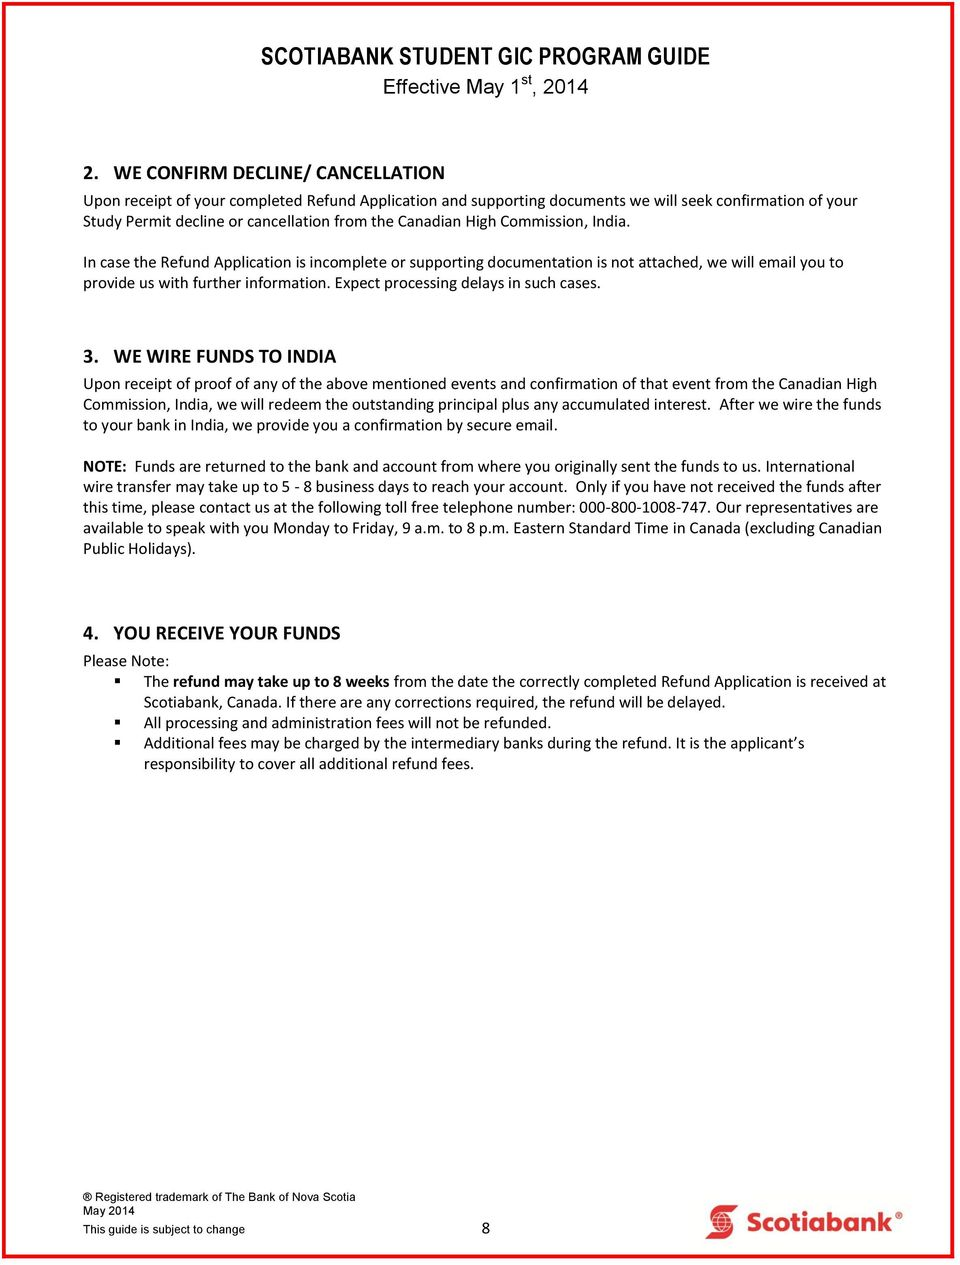 Scotiabank Student Gic Program Guide I How Does The Wiring Money From Usa To Canada Expect Processing Delays In Such Cases 3